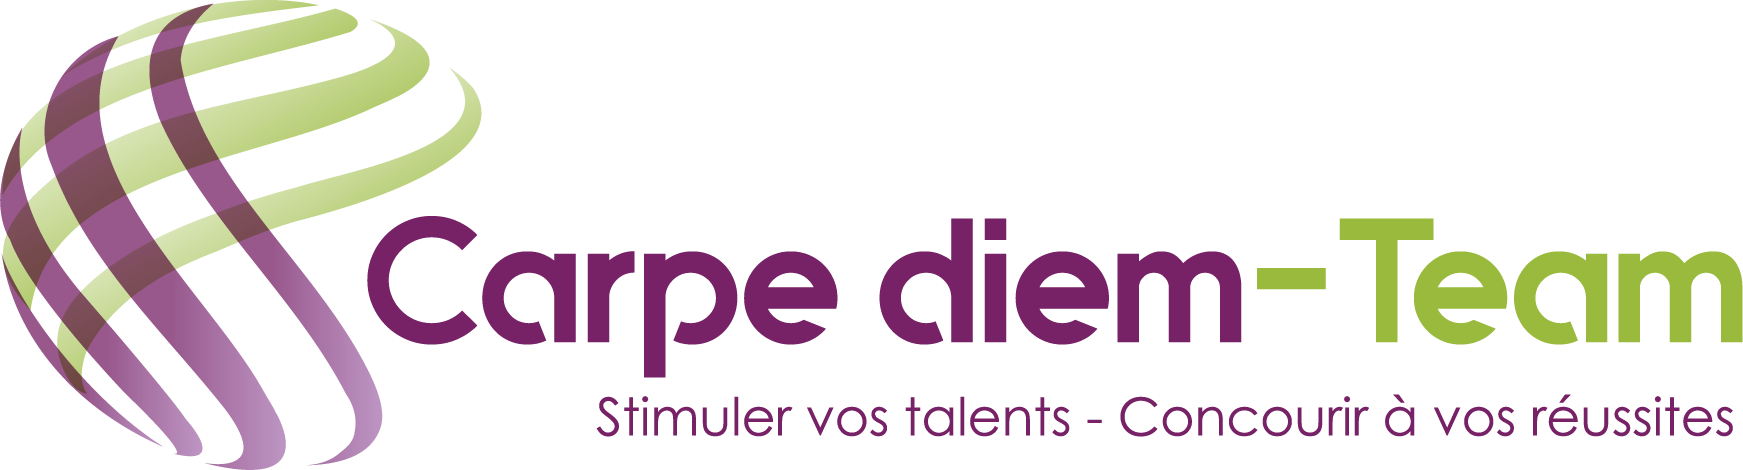 Carpe diem-Team